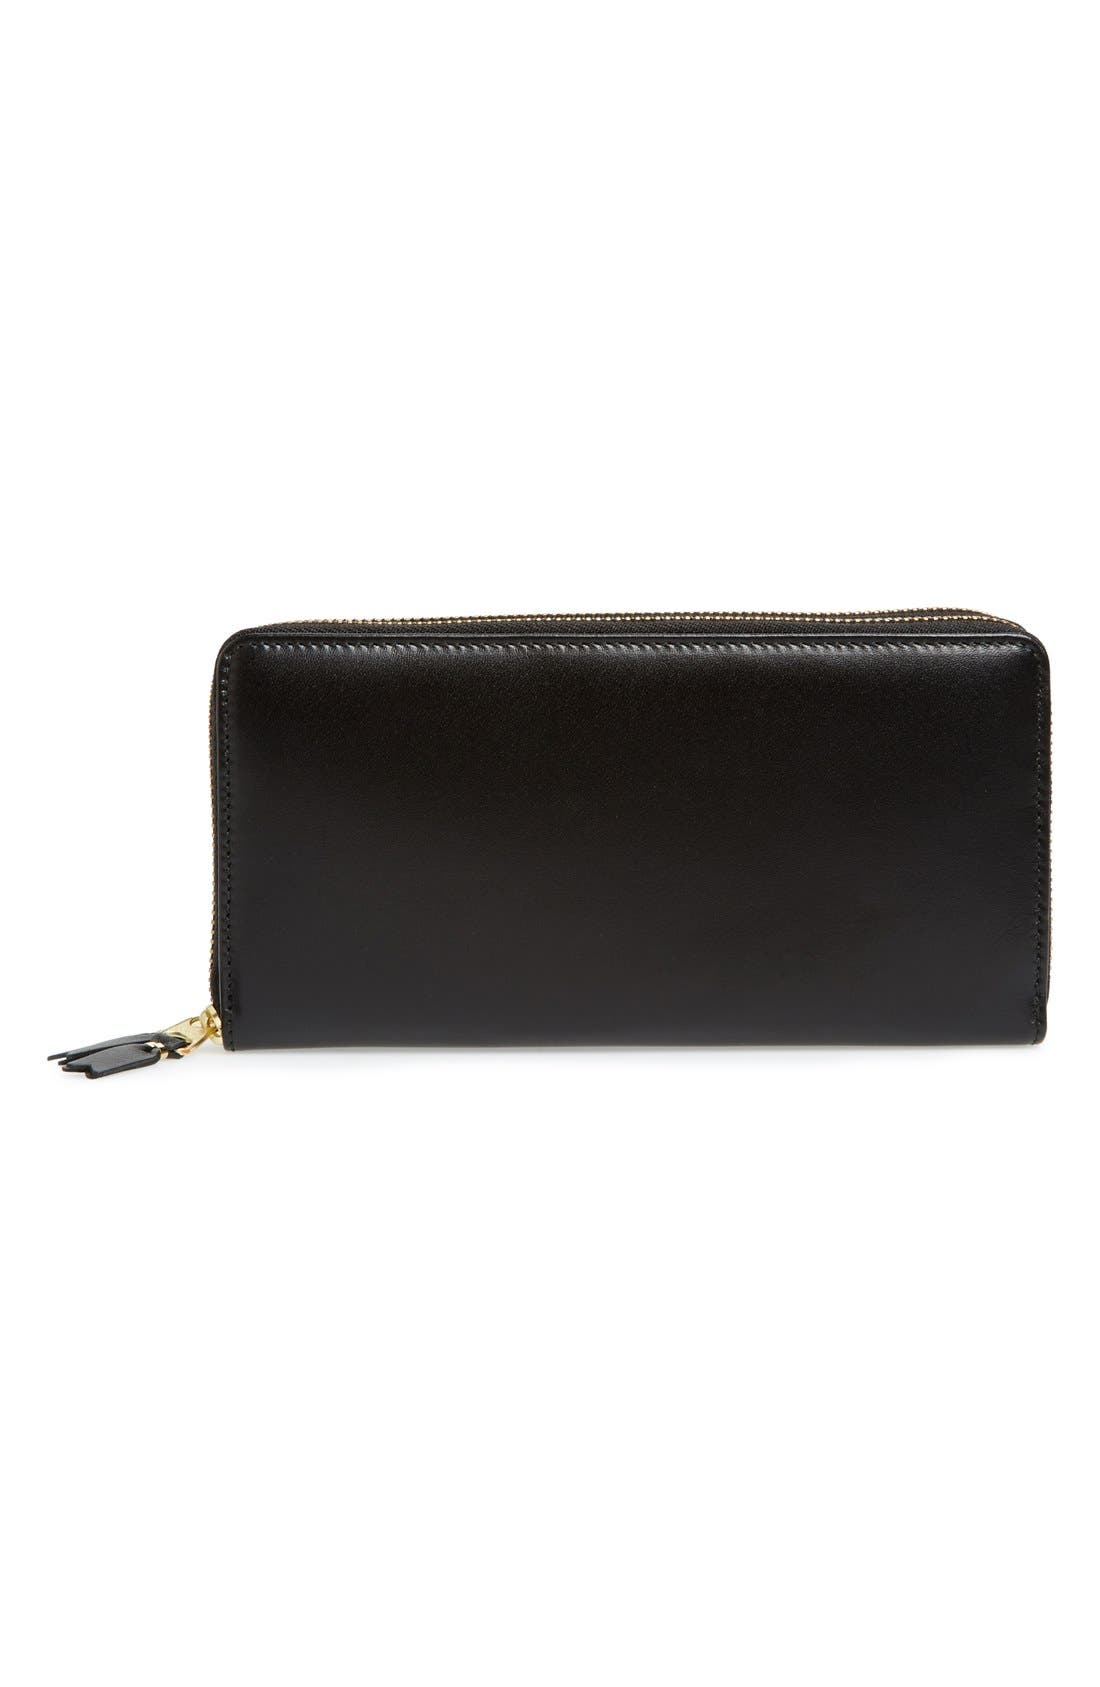 Alternate Image 1 Selected - Comme des Garçons Leather Continental Long Wallet